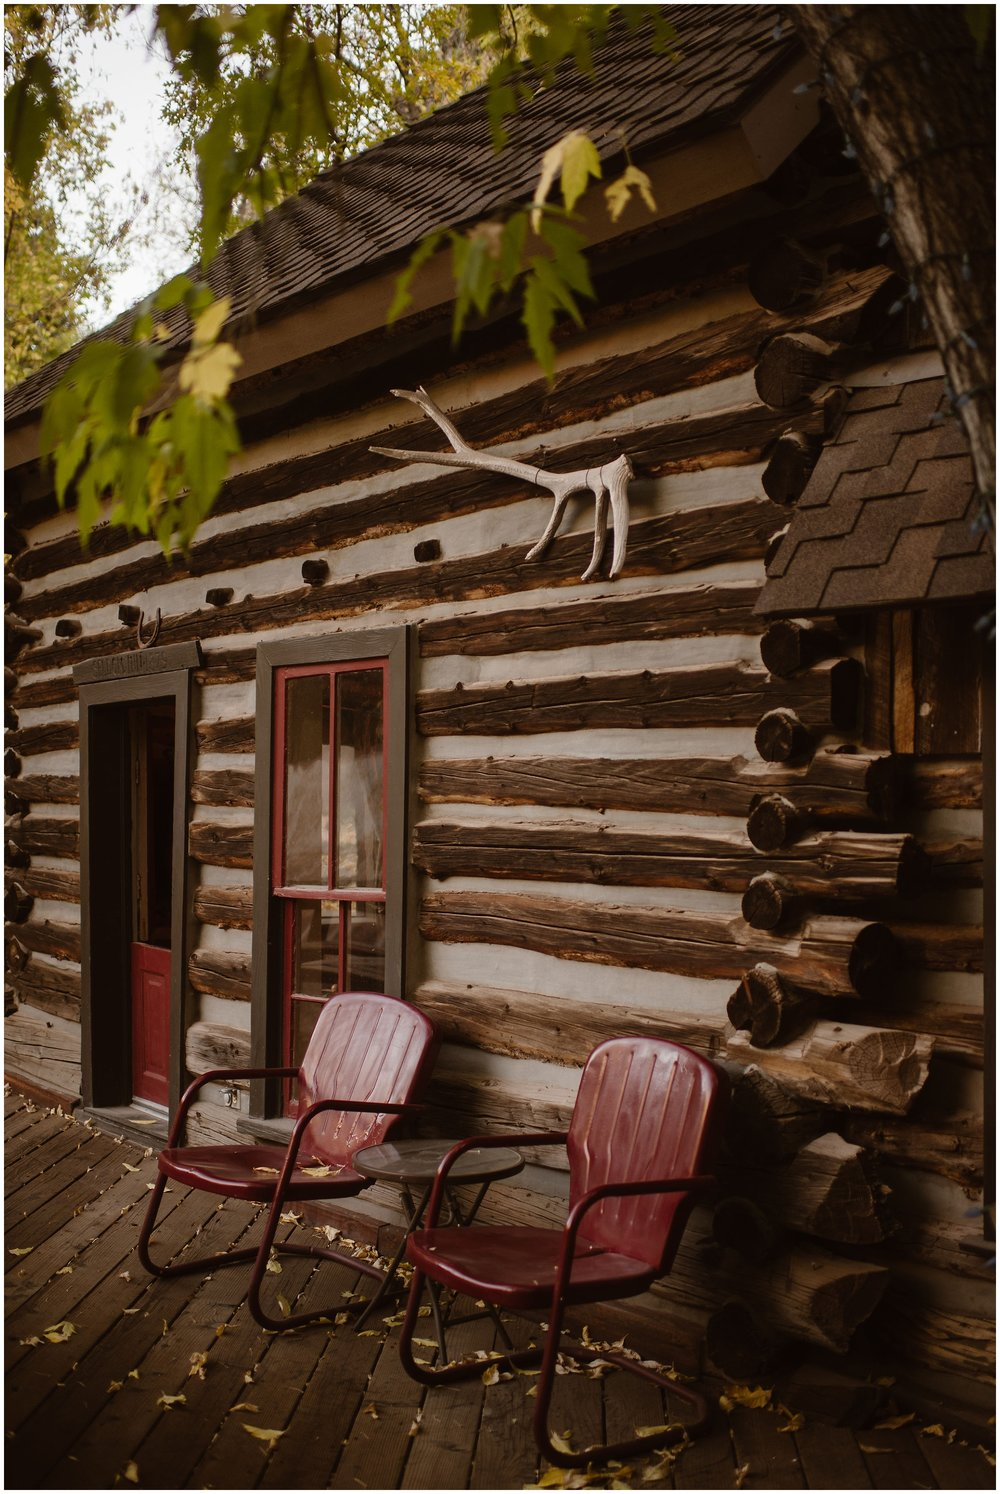 This image, captured by elopement wedding photographer Adventure Instead, shows the VRBO cabin that Brian and Ernie rented for their Colorado mountain wedding. While the two chose to have their elopement ceremony high up in the mountains for an off-road wedding, the reception after eloping was held at this adorable, crooked cabin.